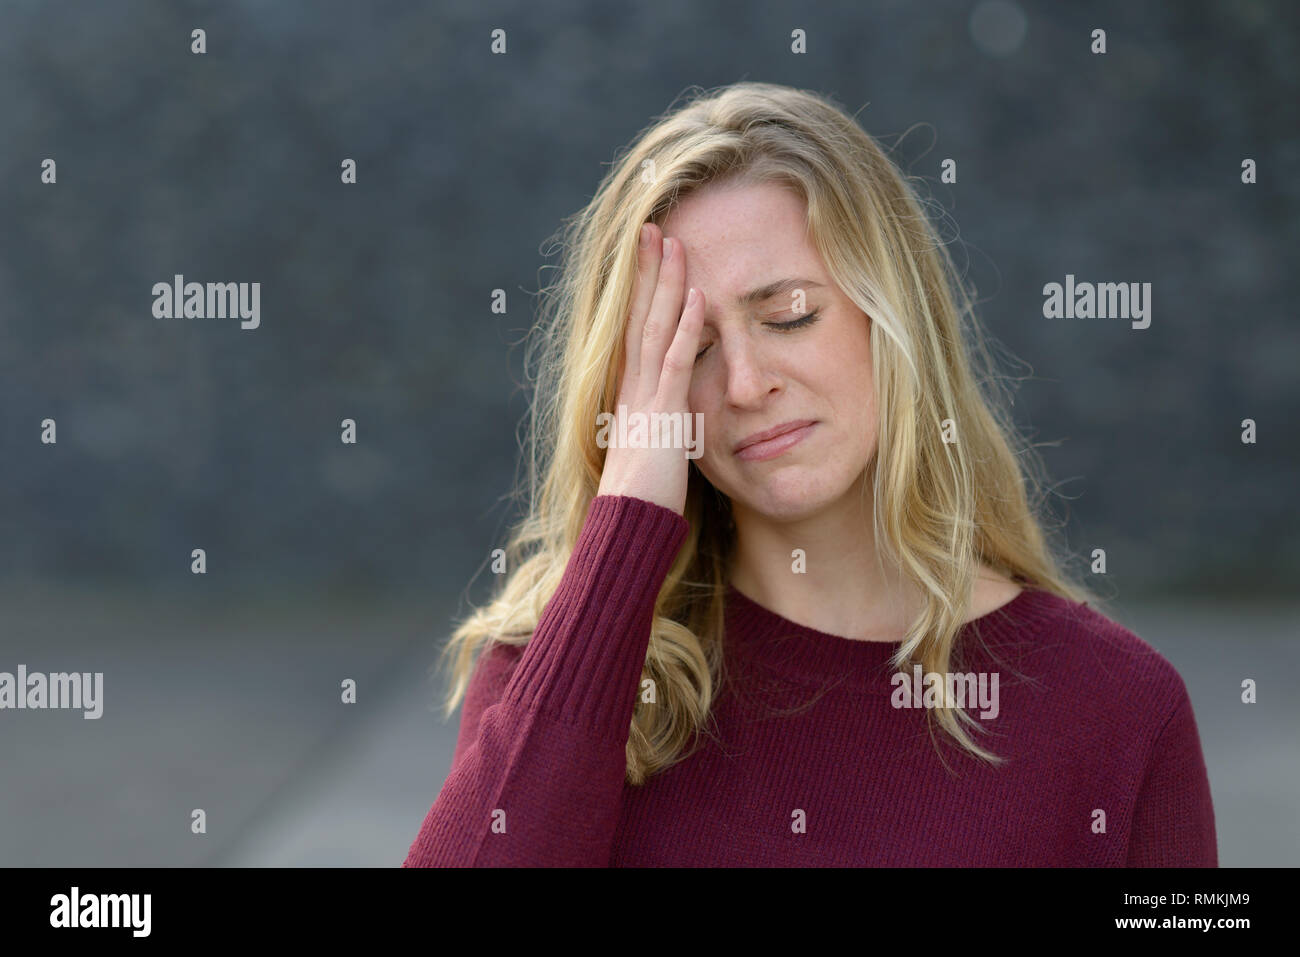 Upset young woman about to start crying holding her hand to her forehead with closed eyes and an anguished expression - Stock Image